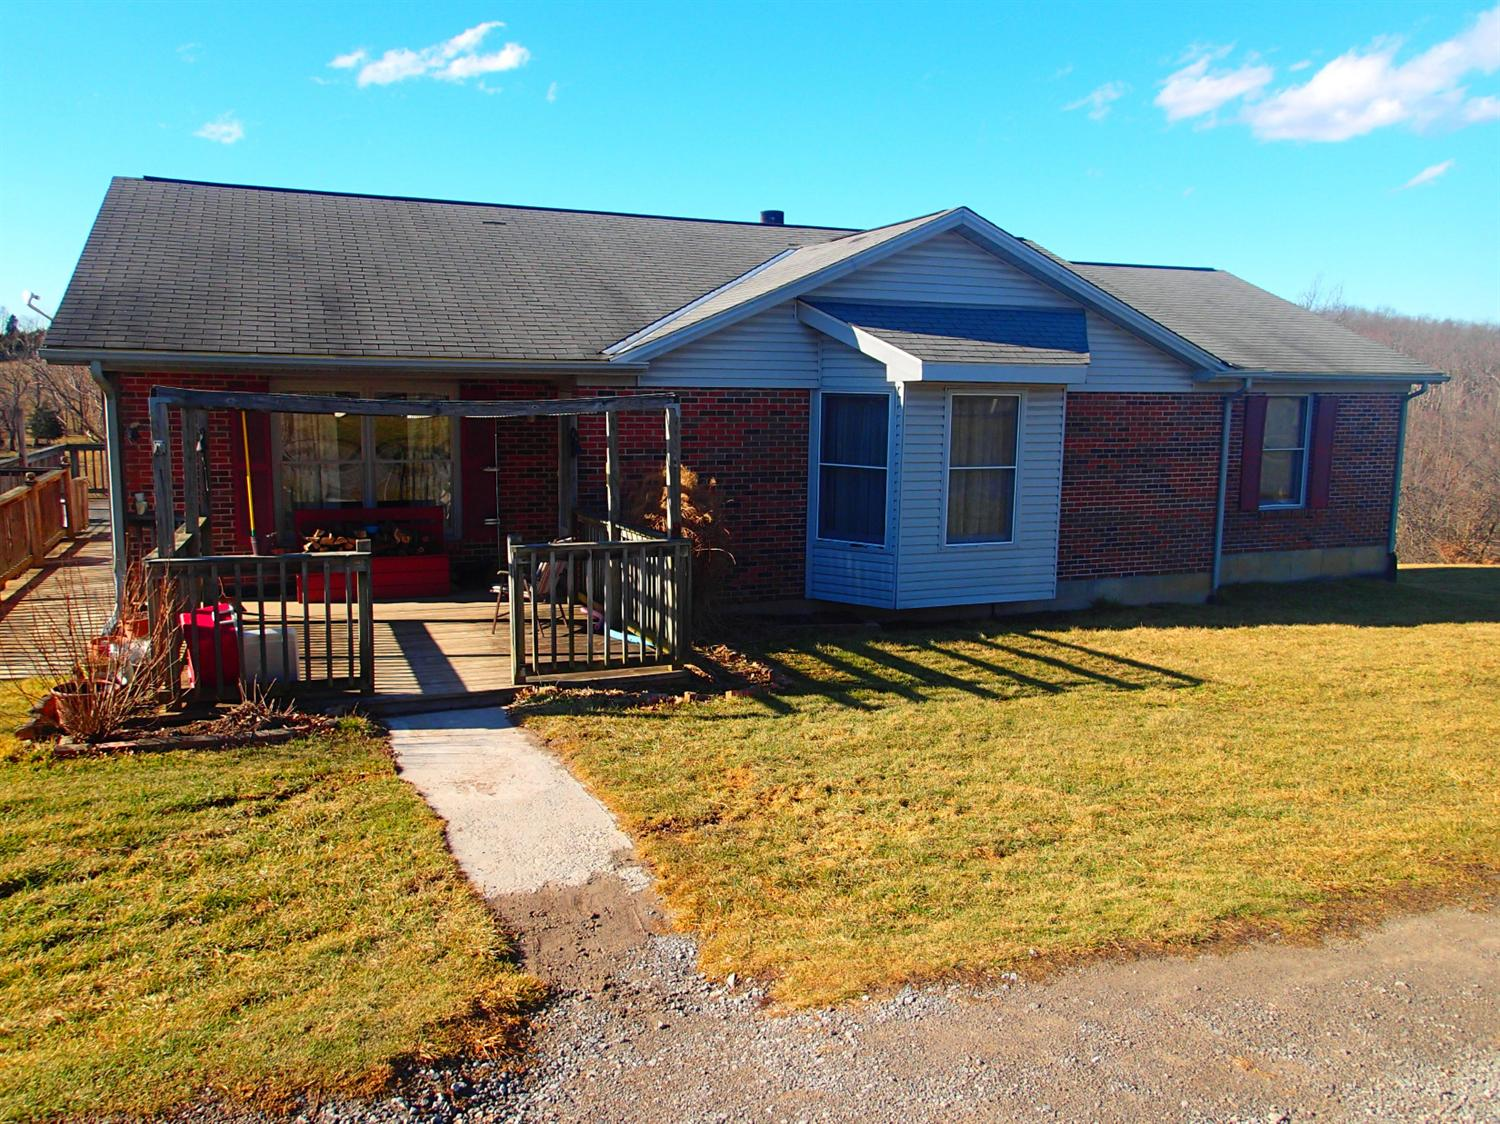 Image of Residential for Sale near Falmouth, Kentucky, in Pendleton county: 65.00 acres